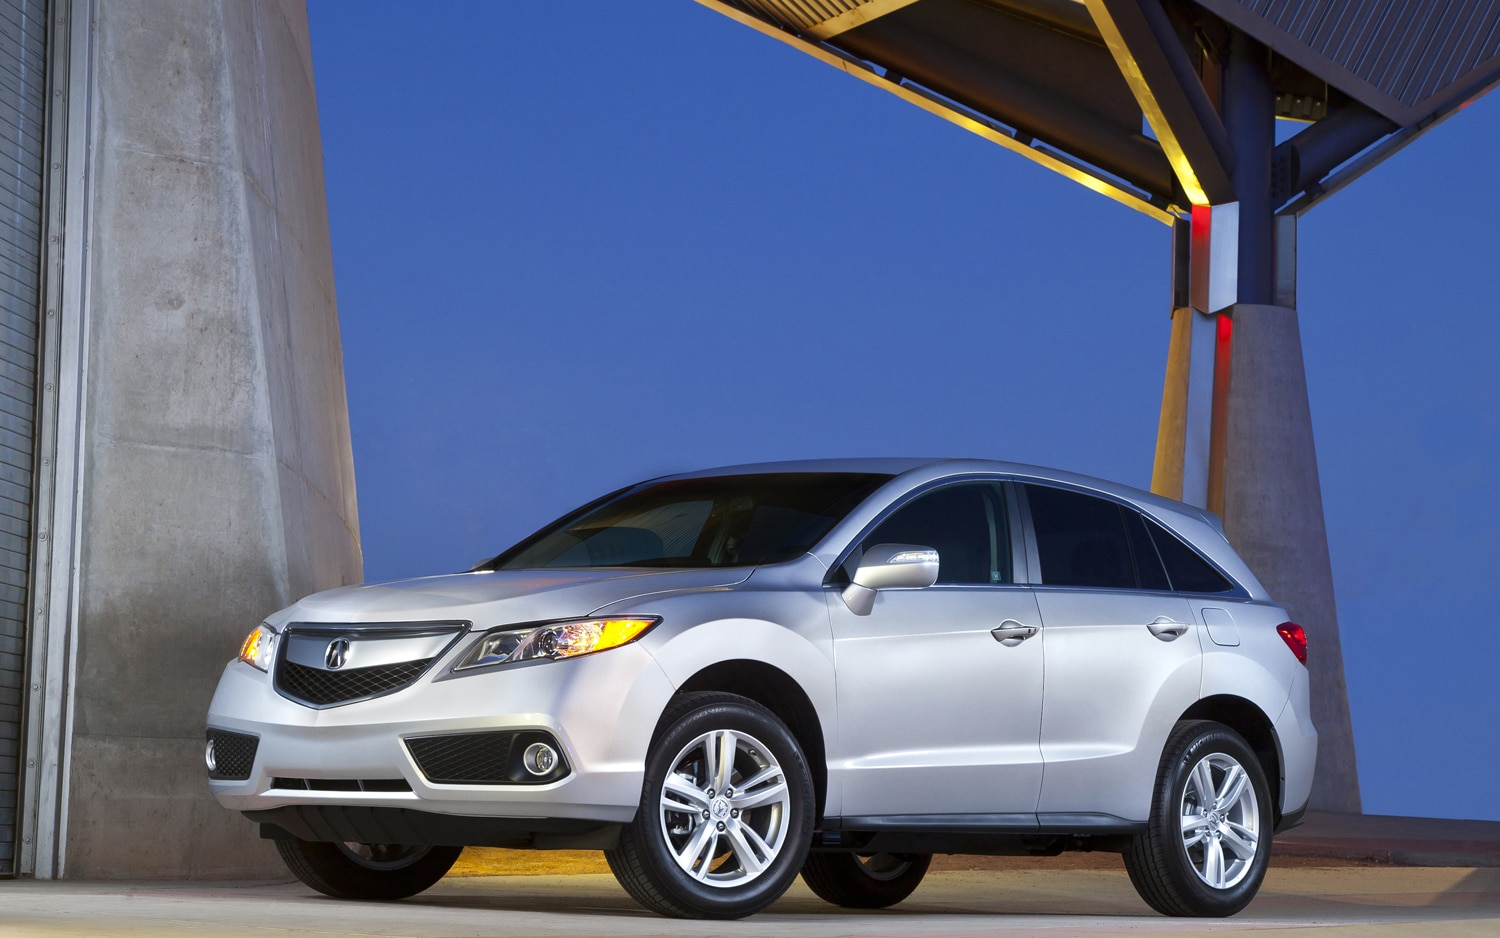 recall central 204 000 honda cr v odyssey acura rdx models. Black Bedroom Furniture Sets. Home Design Ideas